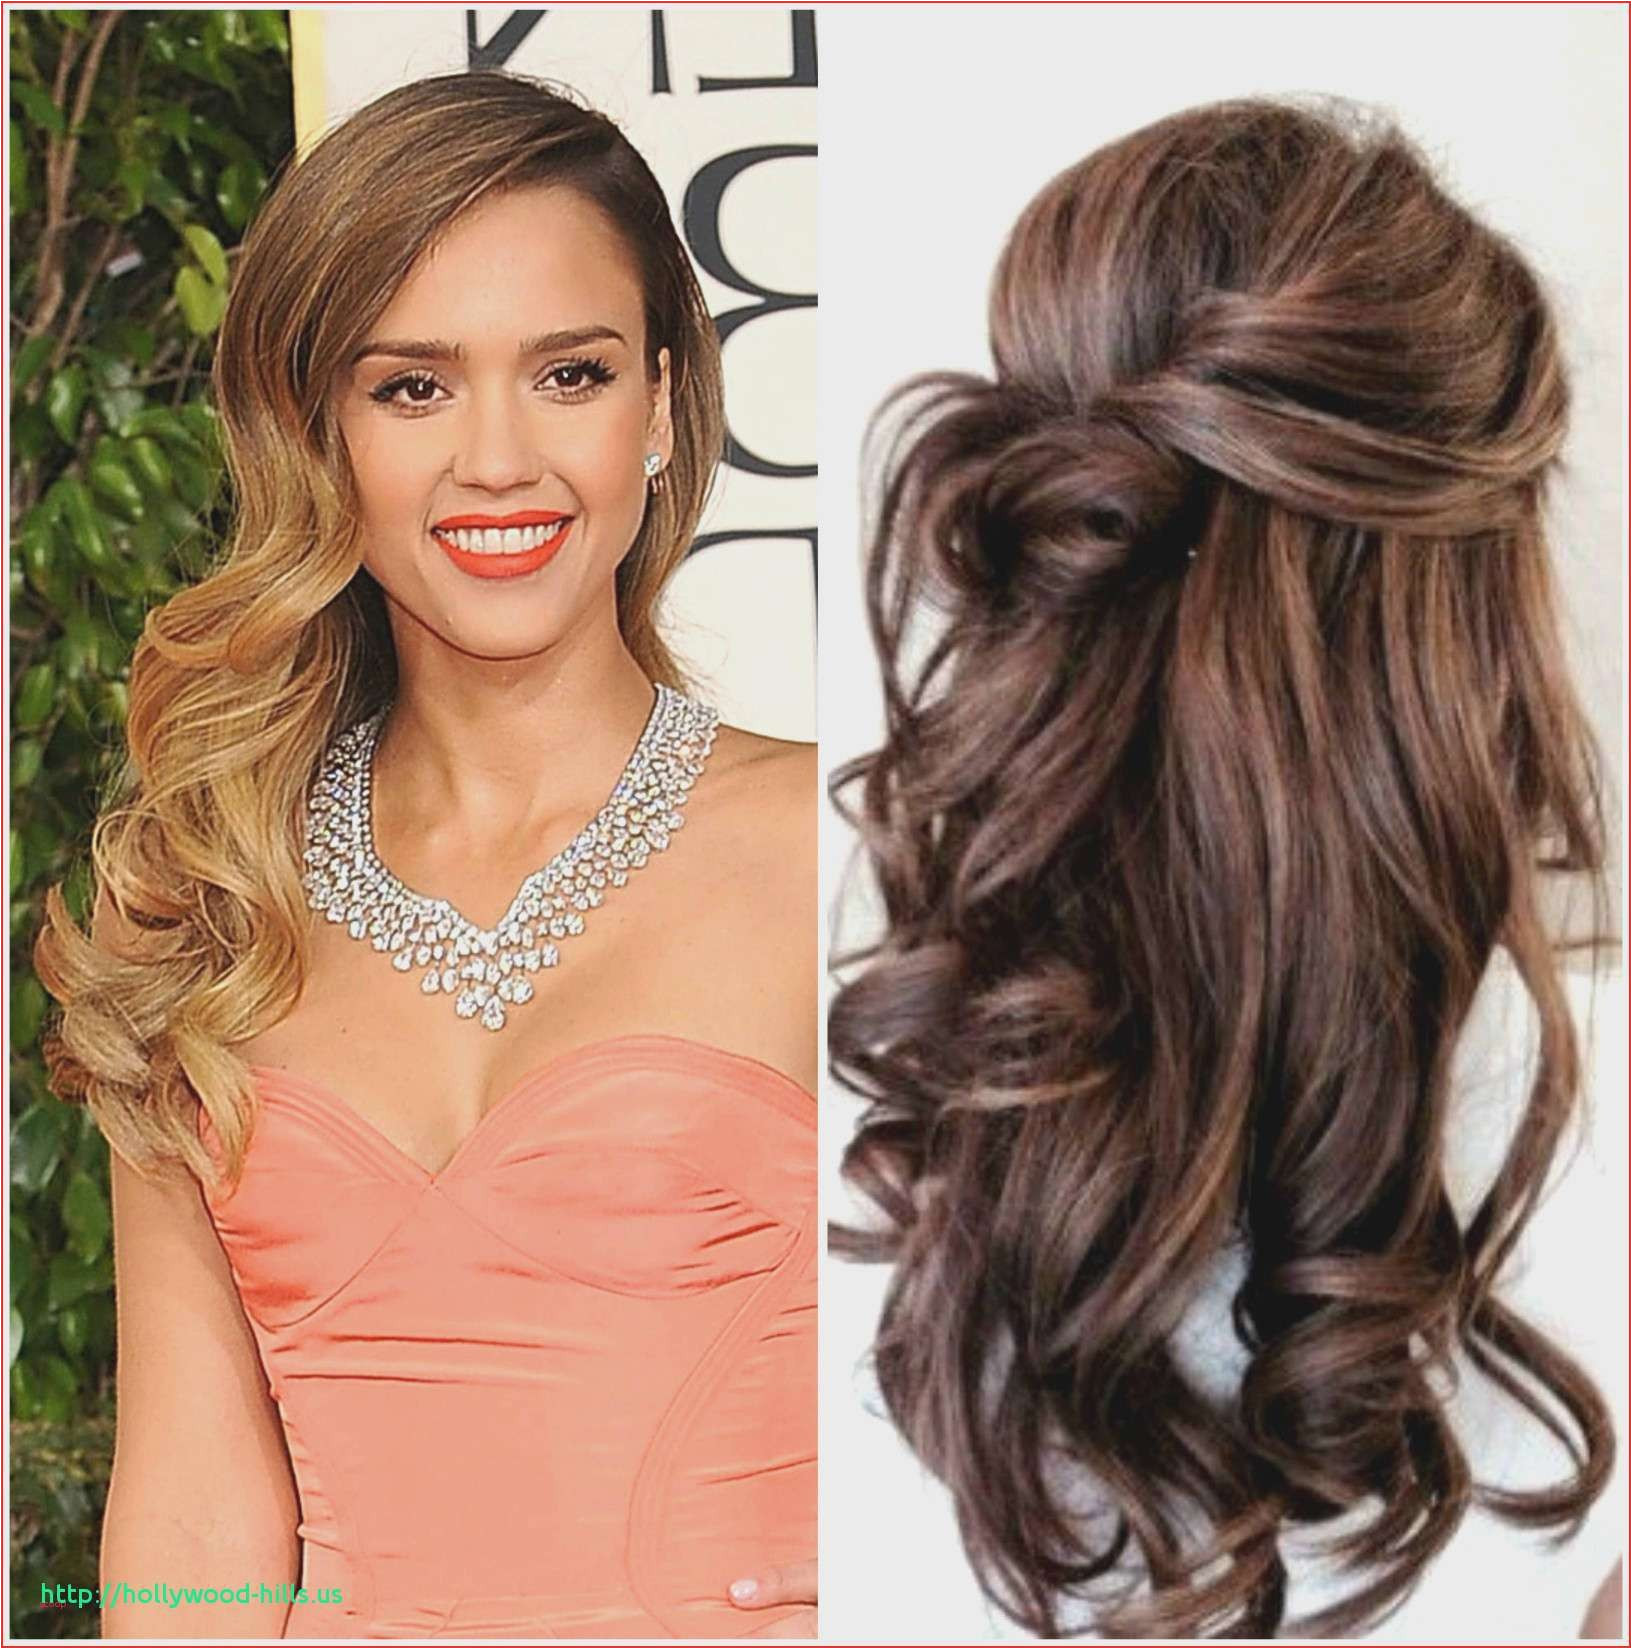 Easy Hairstyles for Short Hair In 5 Minutes 209 Beautiful Easy Hairstyles for Short Curly Hair